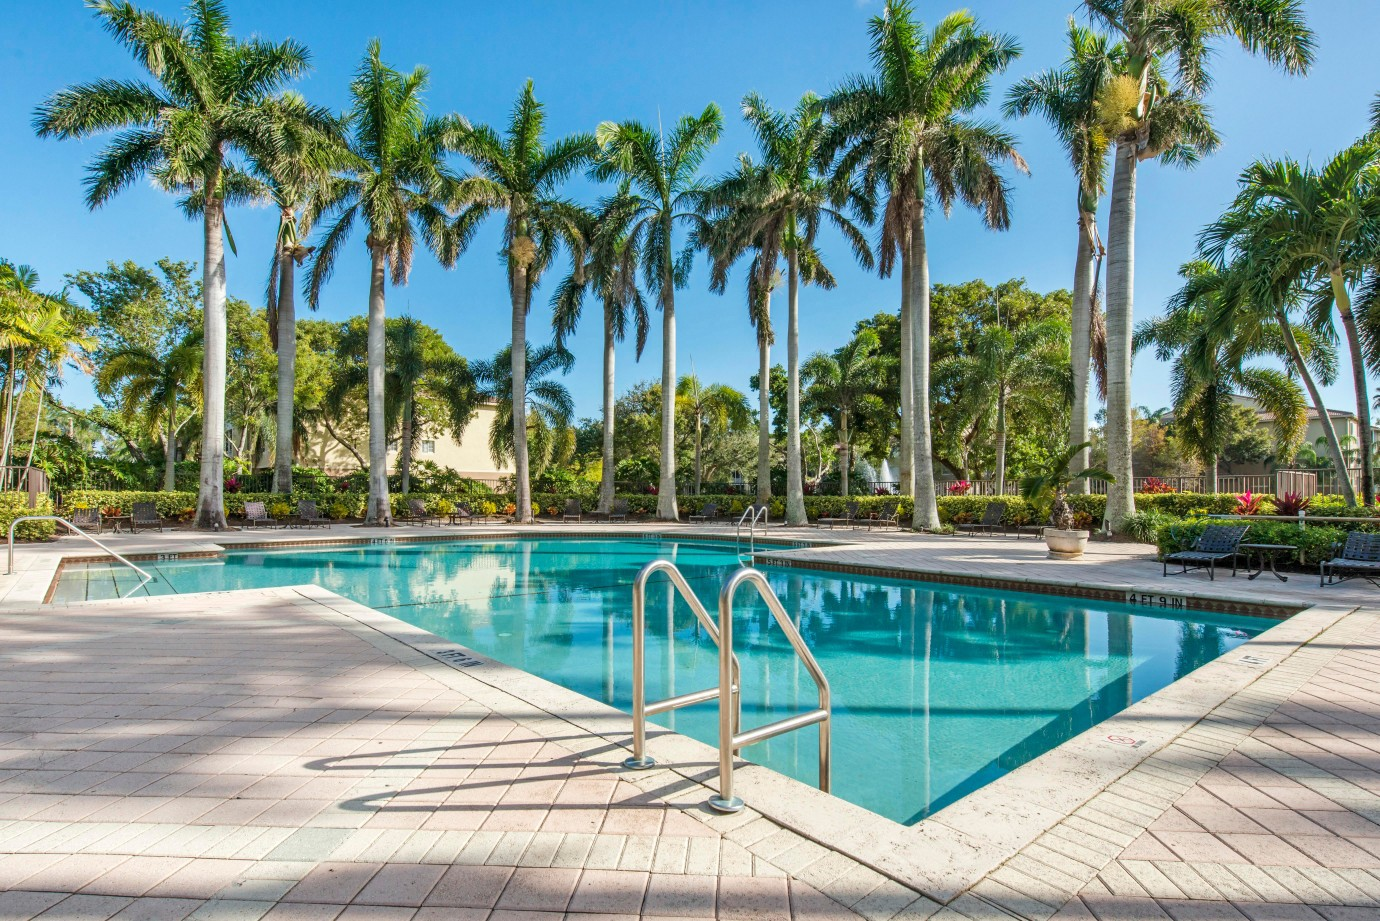 The Cove at Boynton Beach Apartments for rent